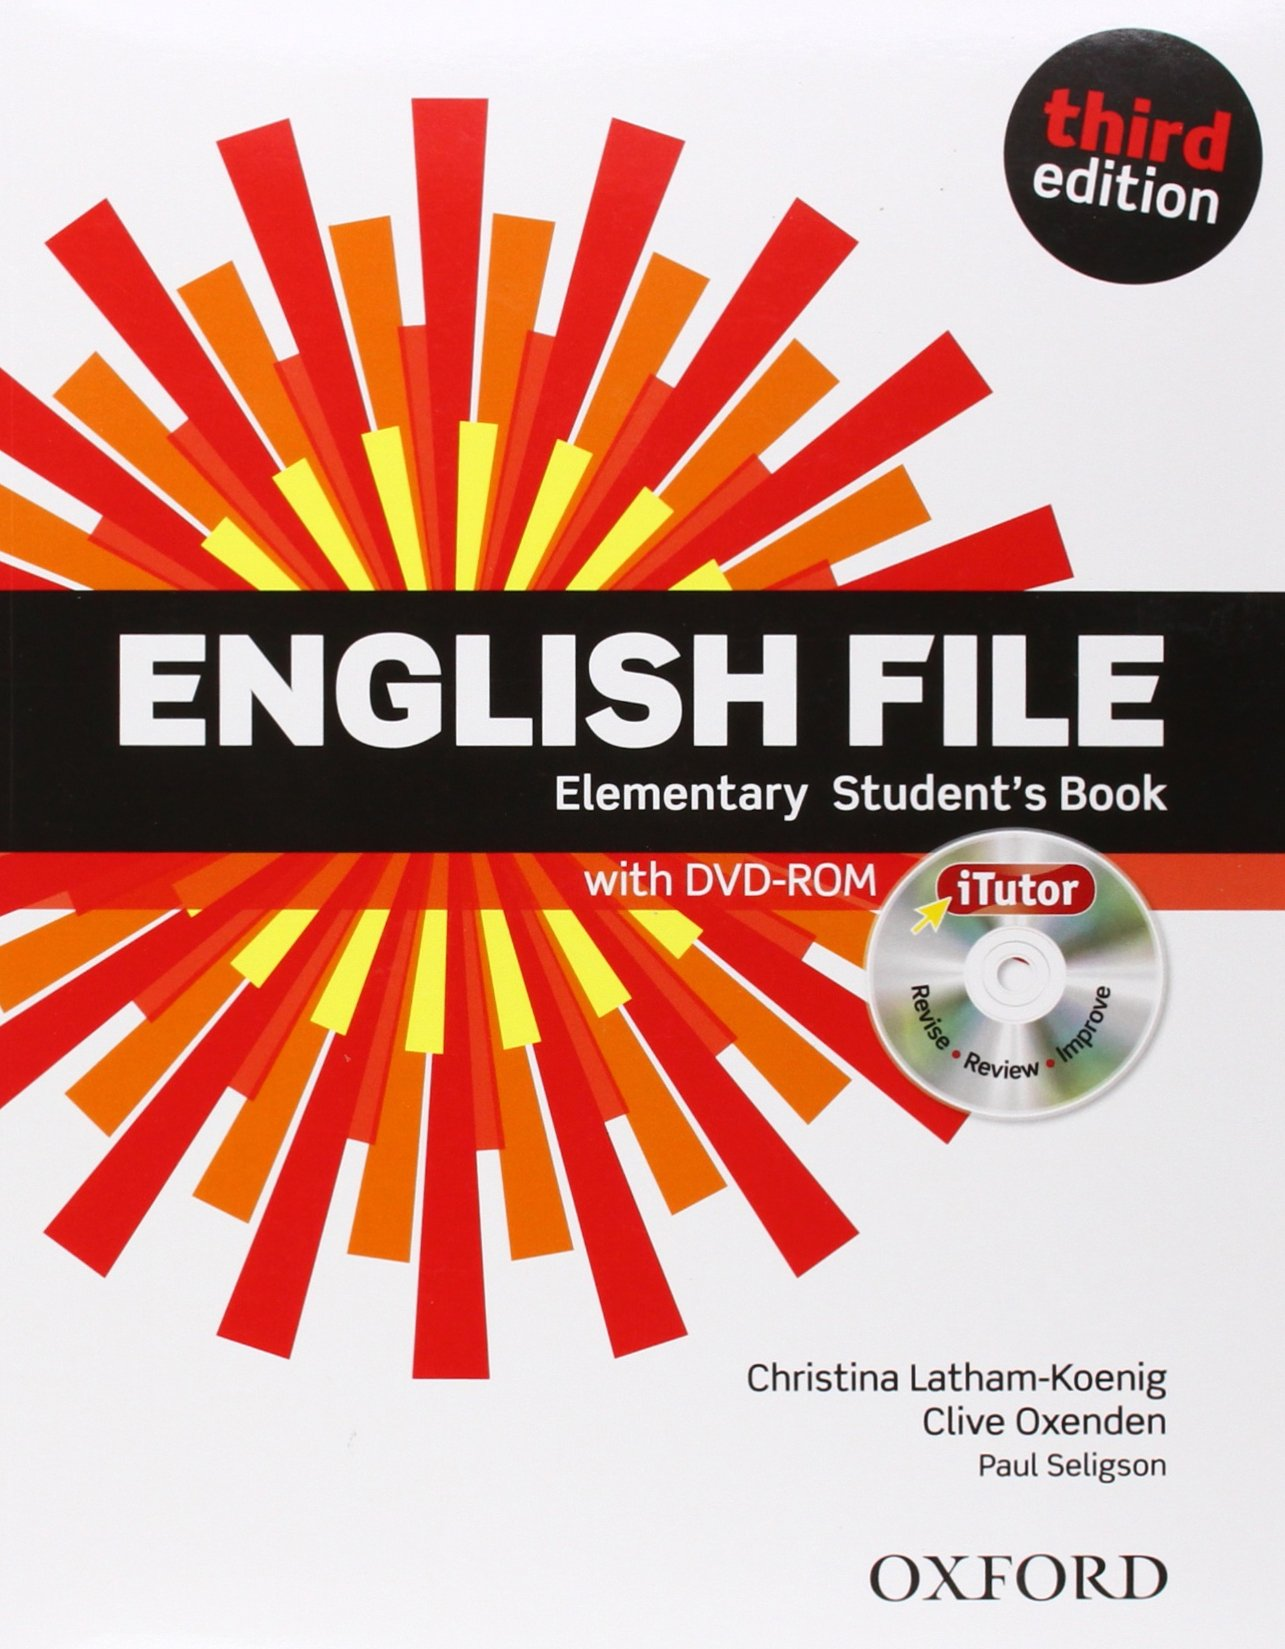 ENGLISH FILE ELEMENTARY 3rd ED Student's Book with iTutor Pack